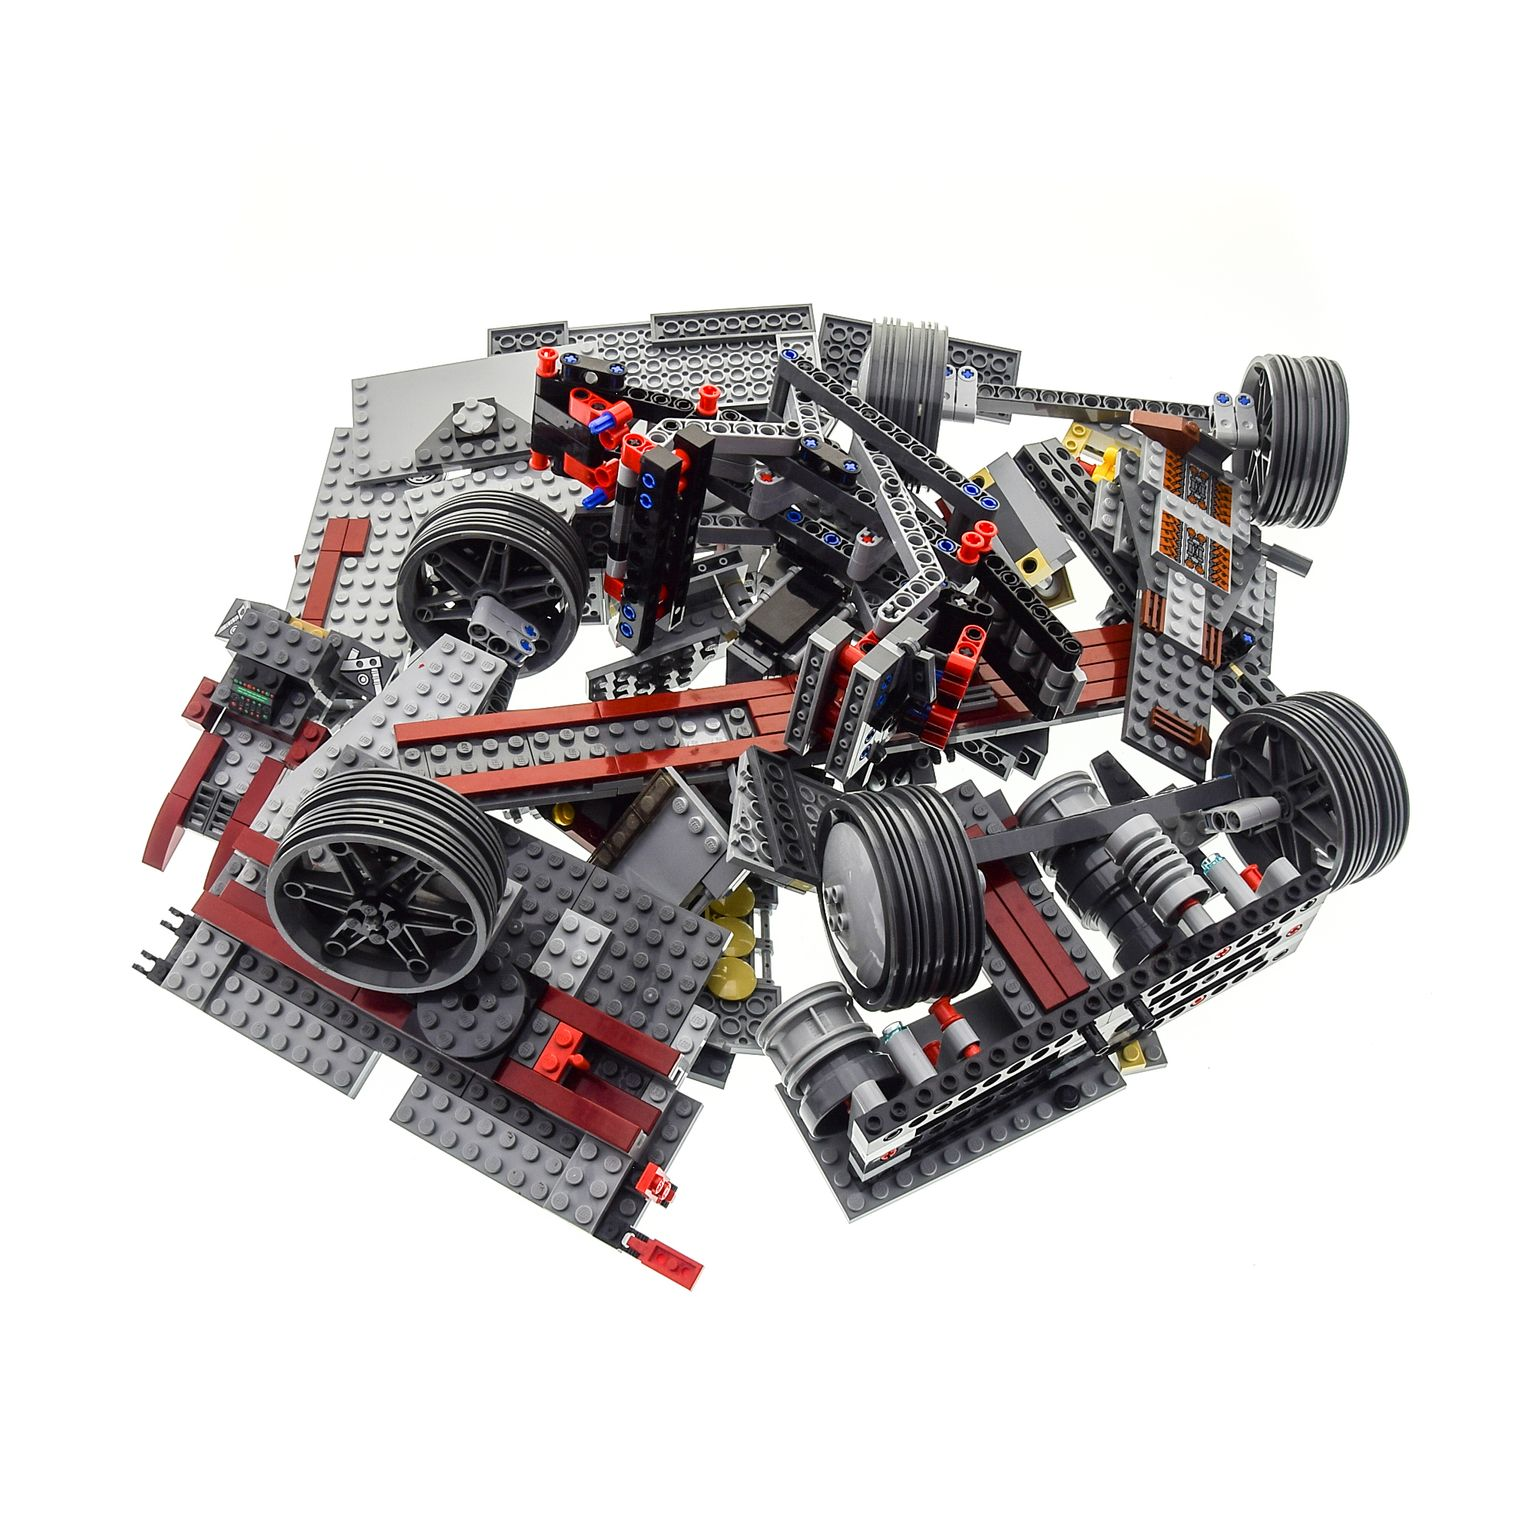 1 x lego system teile set f r modell 8098 clone turbo tank. Black Bedroom Furniture Sets. Home Design Ideas